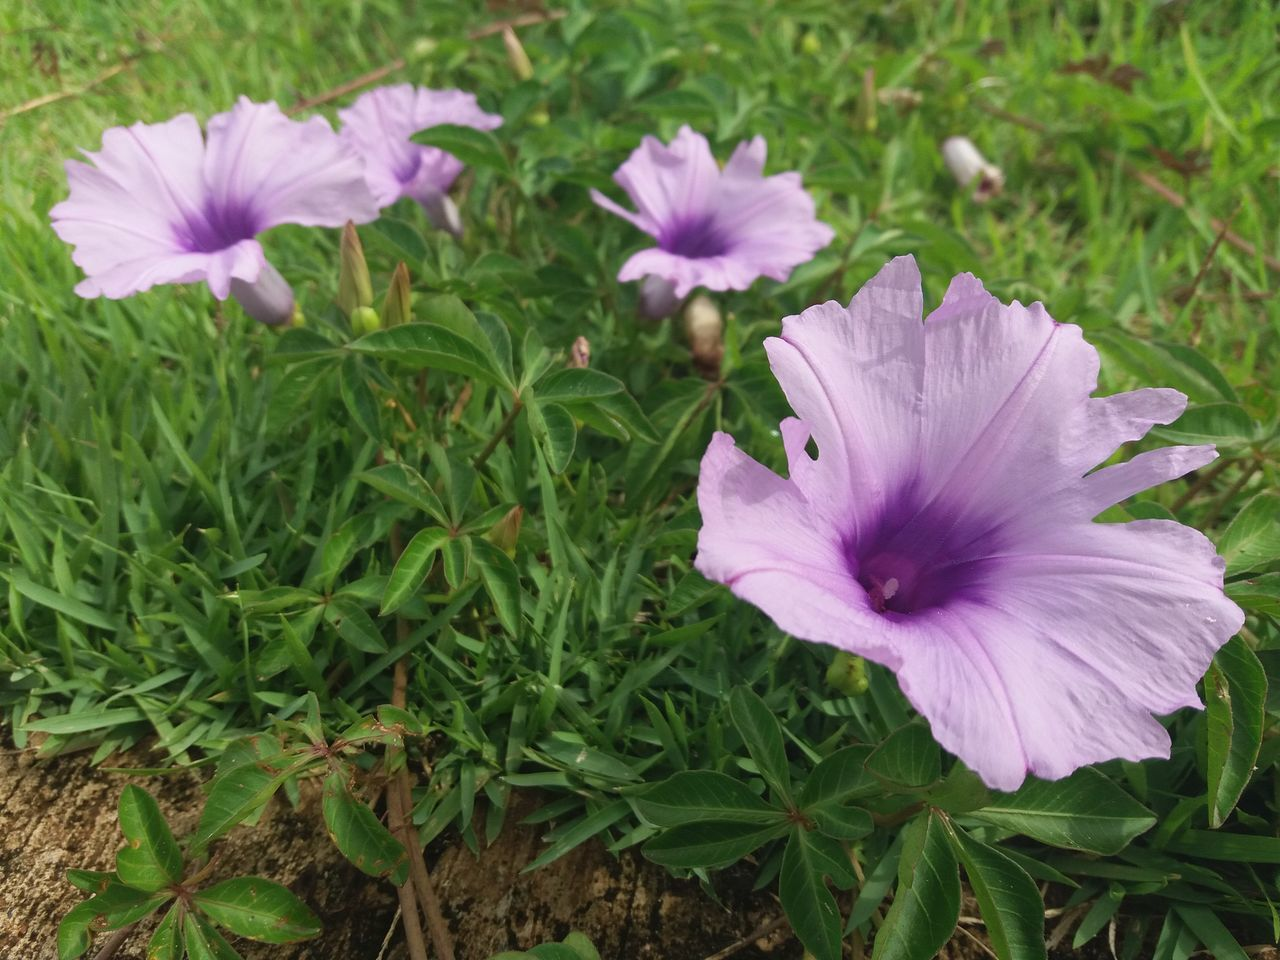 flower, petal, flower head, growth, beauty in nature, plant, nature, fragility, freshness, blooming, green color, white color, no people, field, outdoors, day, high angle view, one animal, purple, petunia, close-up, park - man made space, animal themes, leaf, grass, crocus